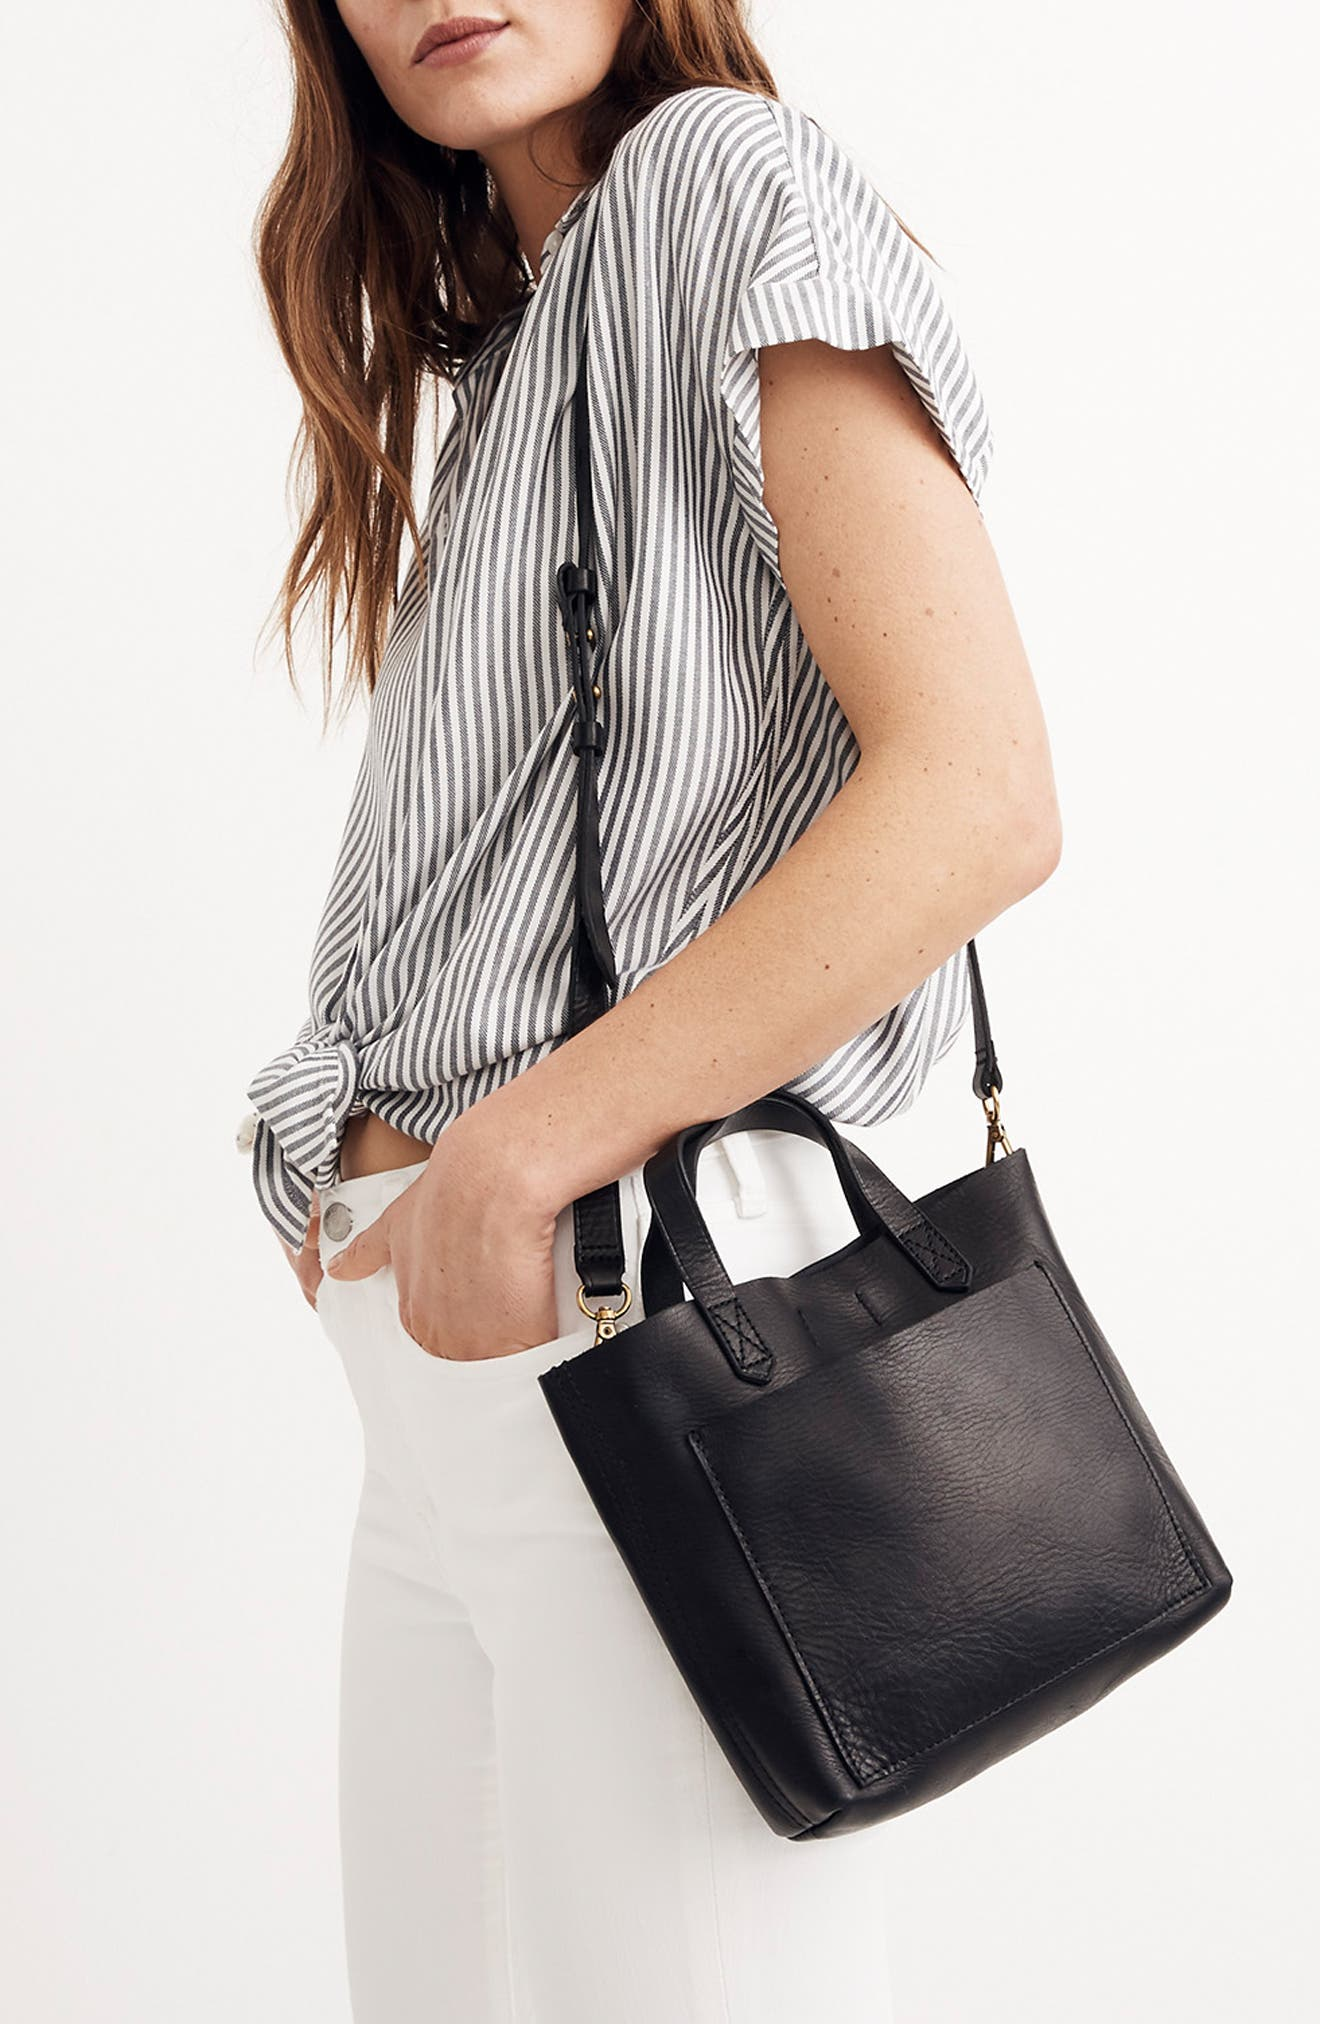 MADEWELL, Small Transport Leather Crossbody, Alternate thumbnail 2, color, 001